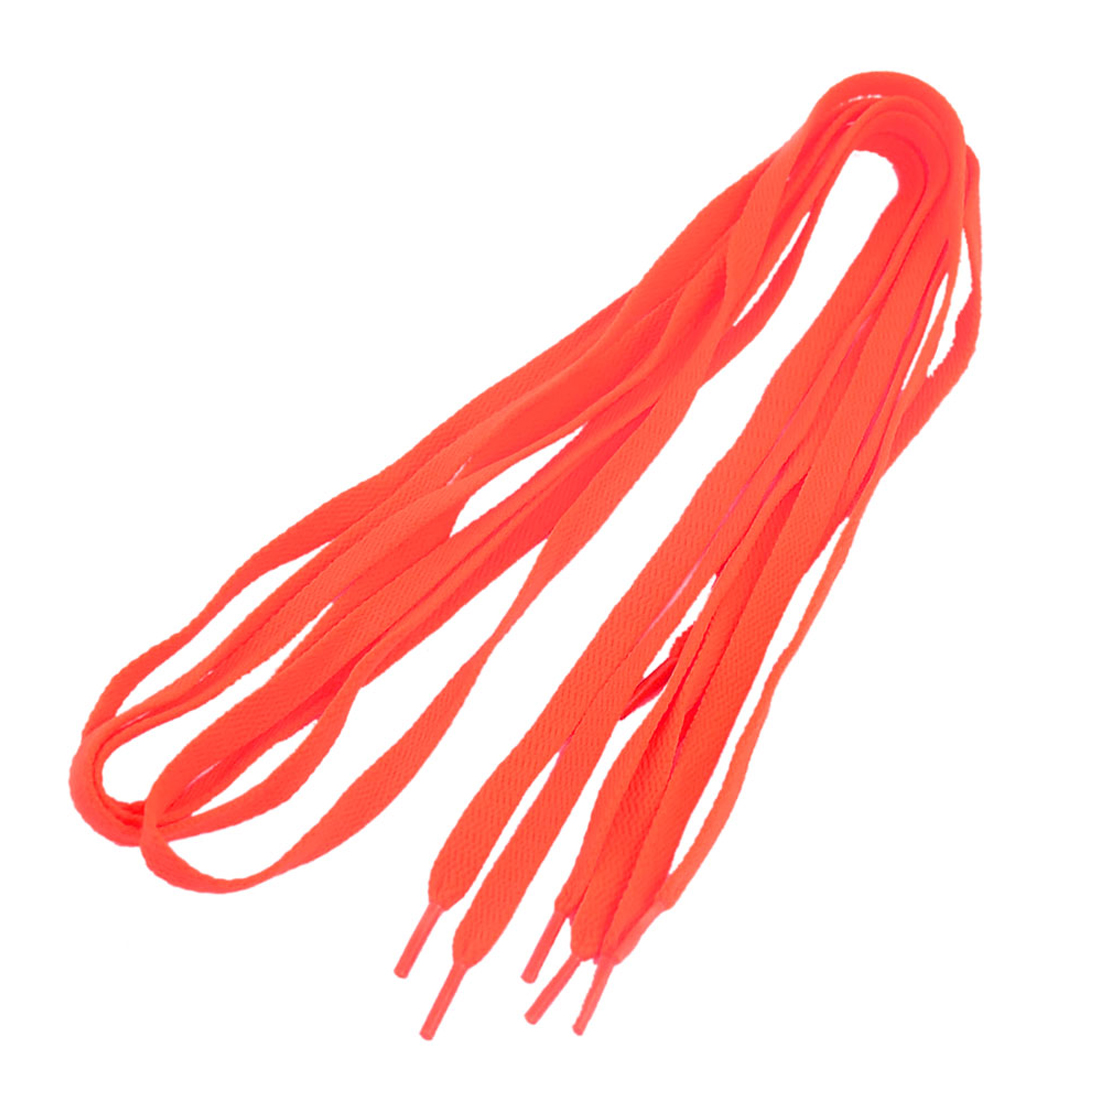 Plastic Tip Flat Shoelaces Sports Shoes Boots Sneakers Skates Shoe Lace String Orange 2 Pairs